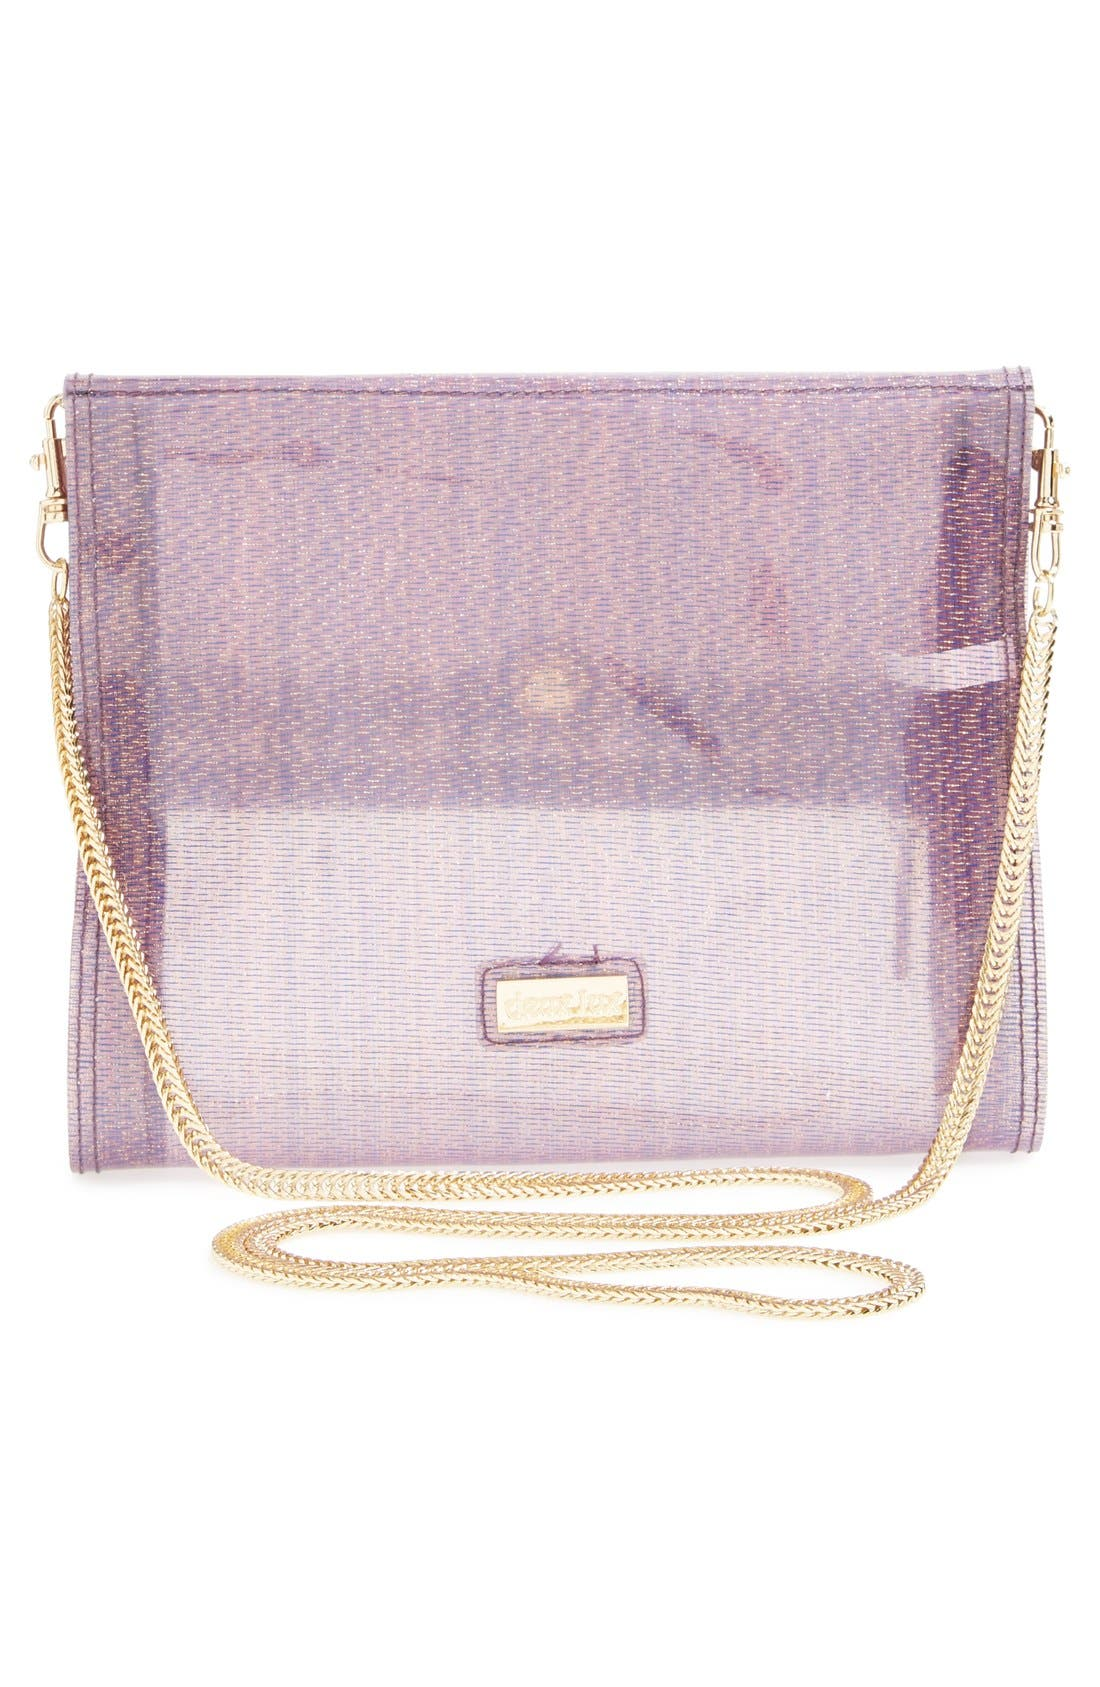 Alternate Image 3  - Deux Lux 'Pasha' Crystal Embellished Convertible Foldover Clutch